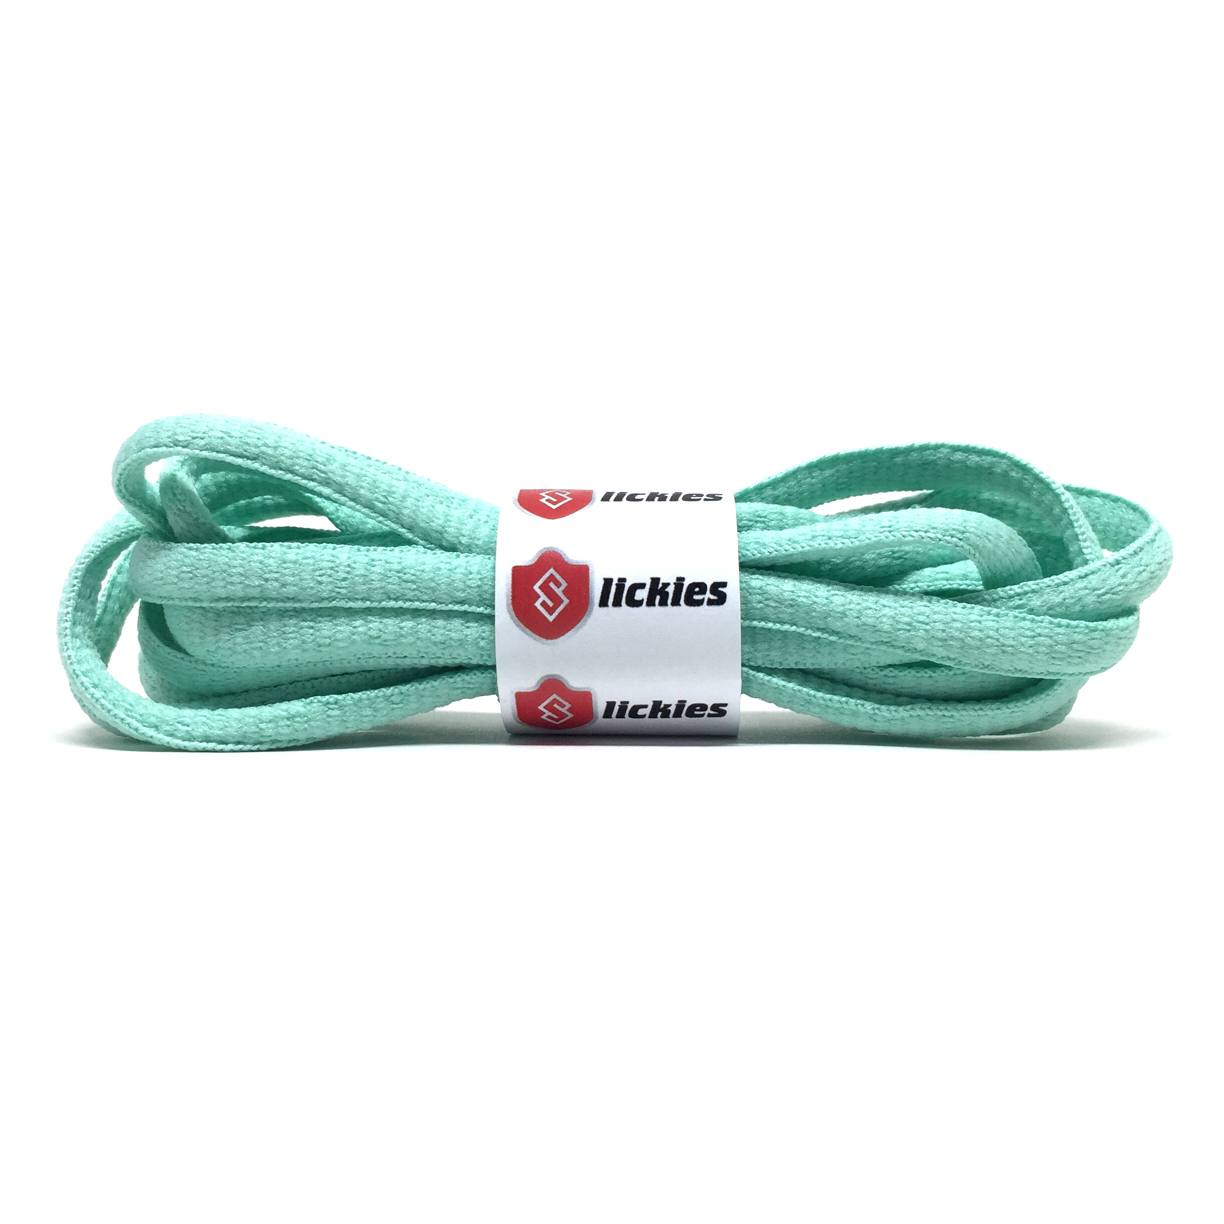 Semi-Circle - BASICS Oval Laces - Mint Green